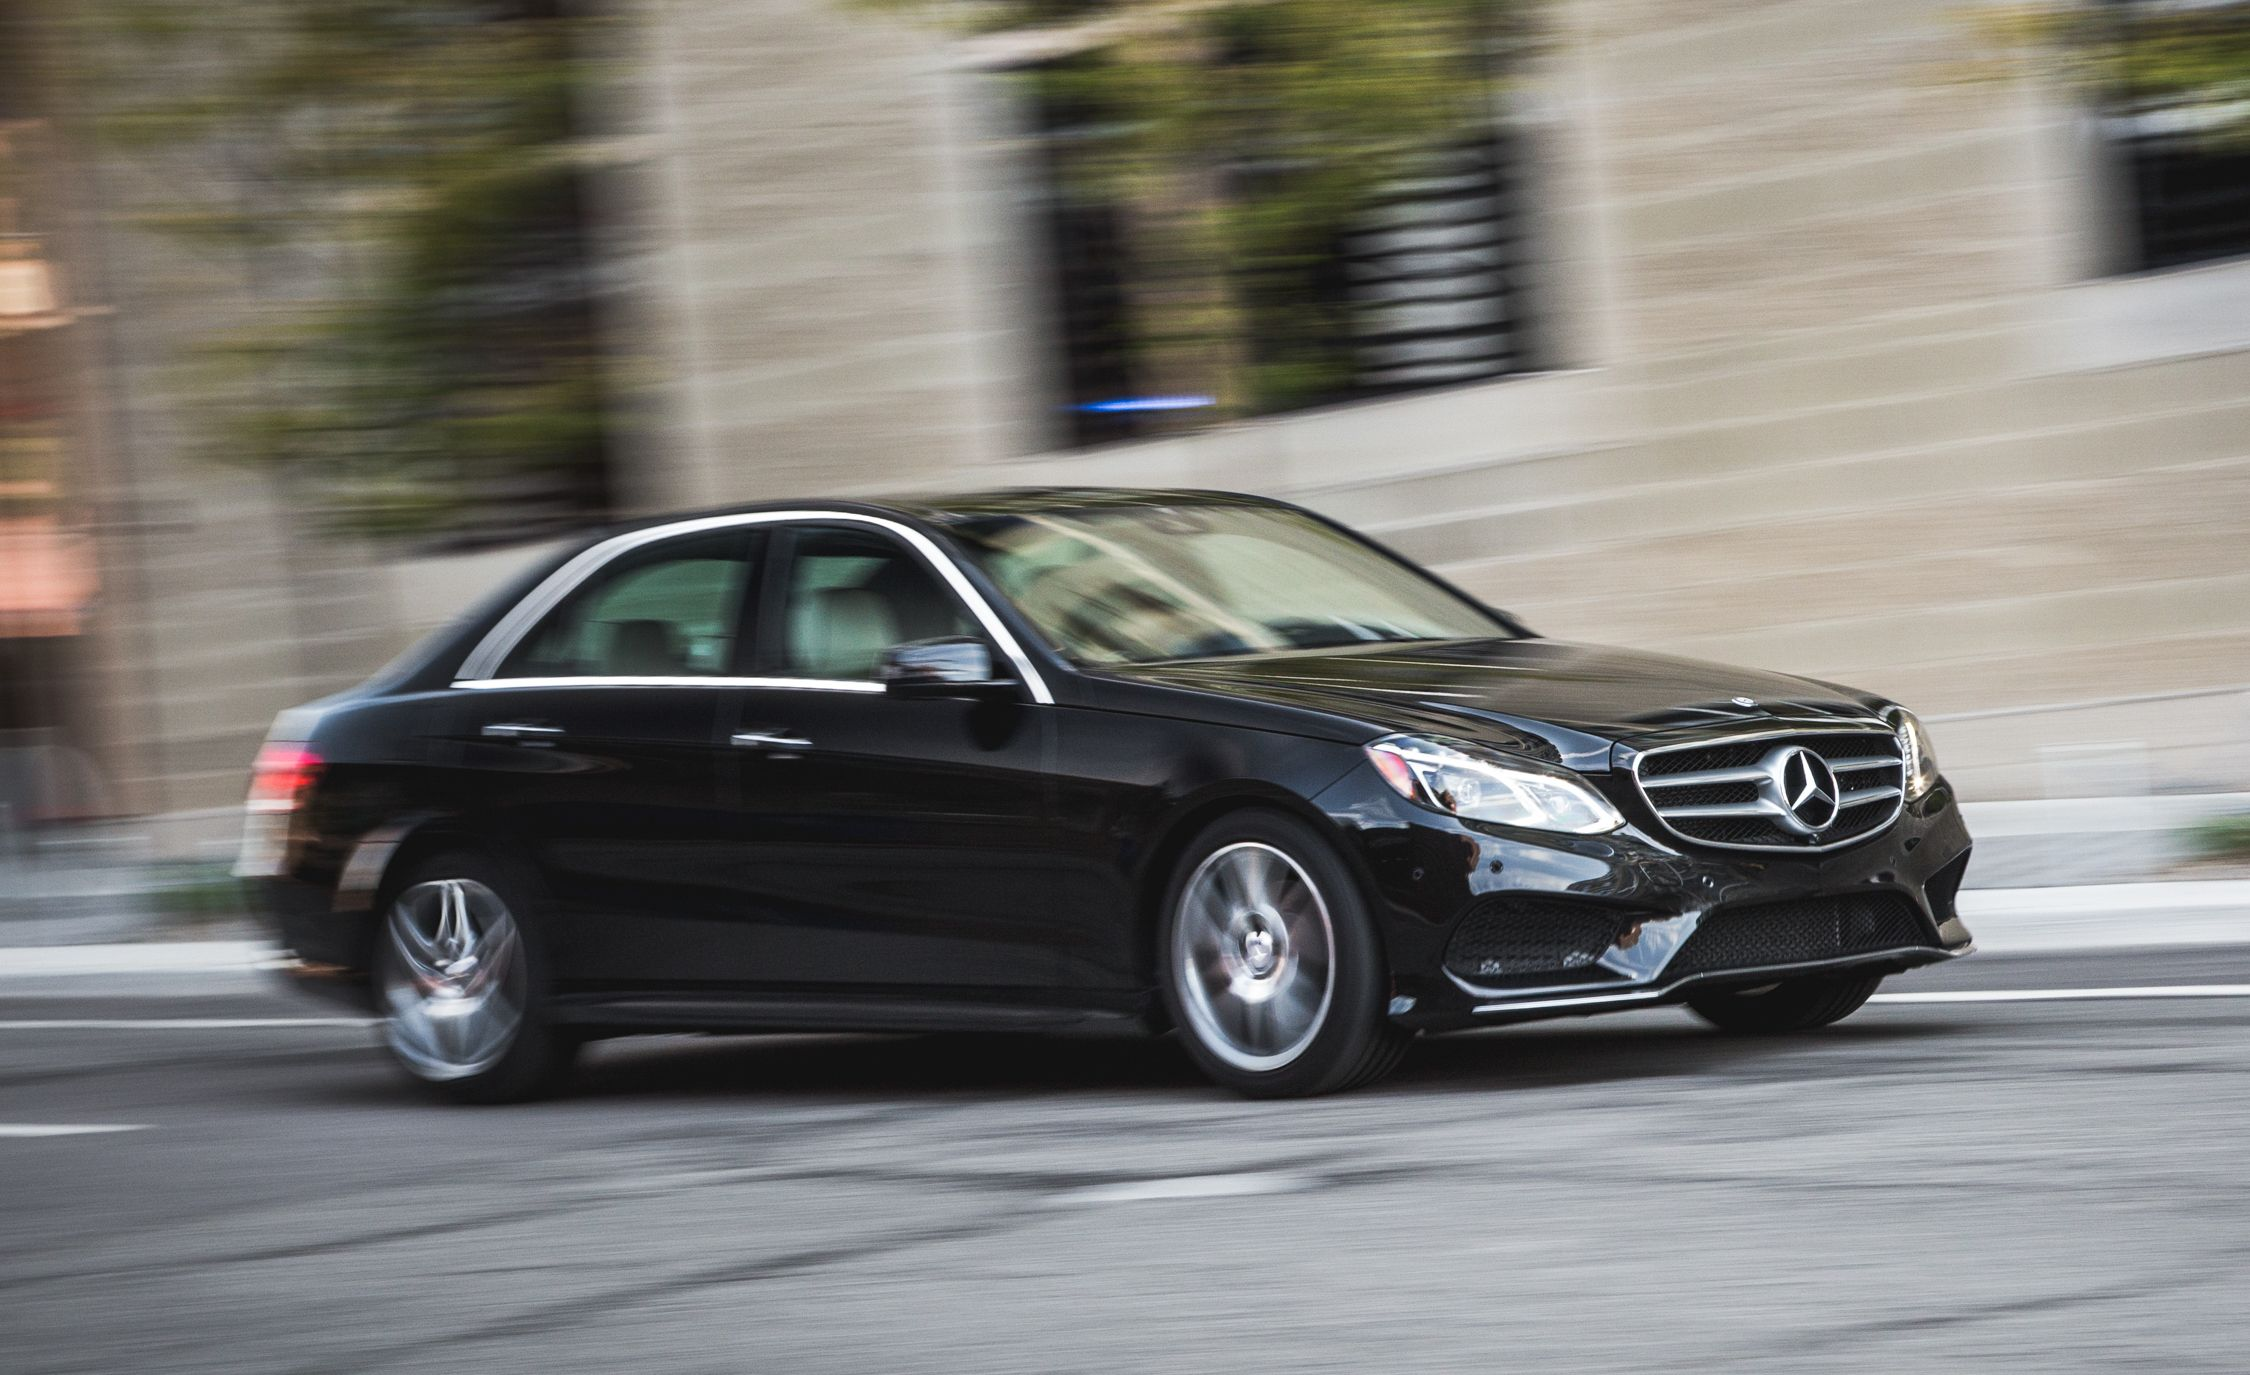 2015 mercedes benz e400 4matic pictures photo gallery car and driver